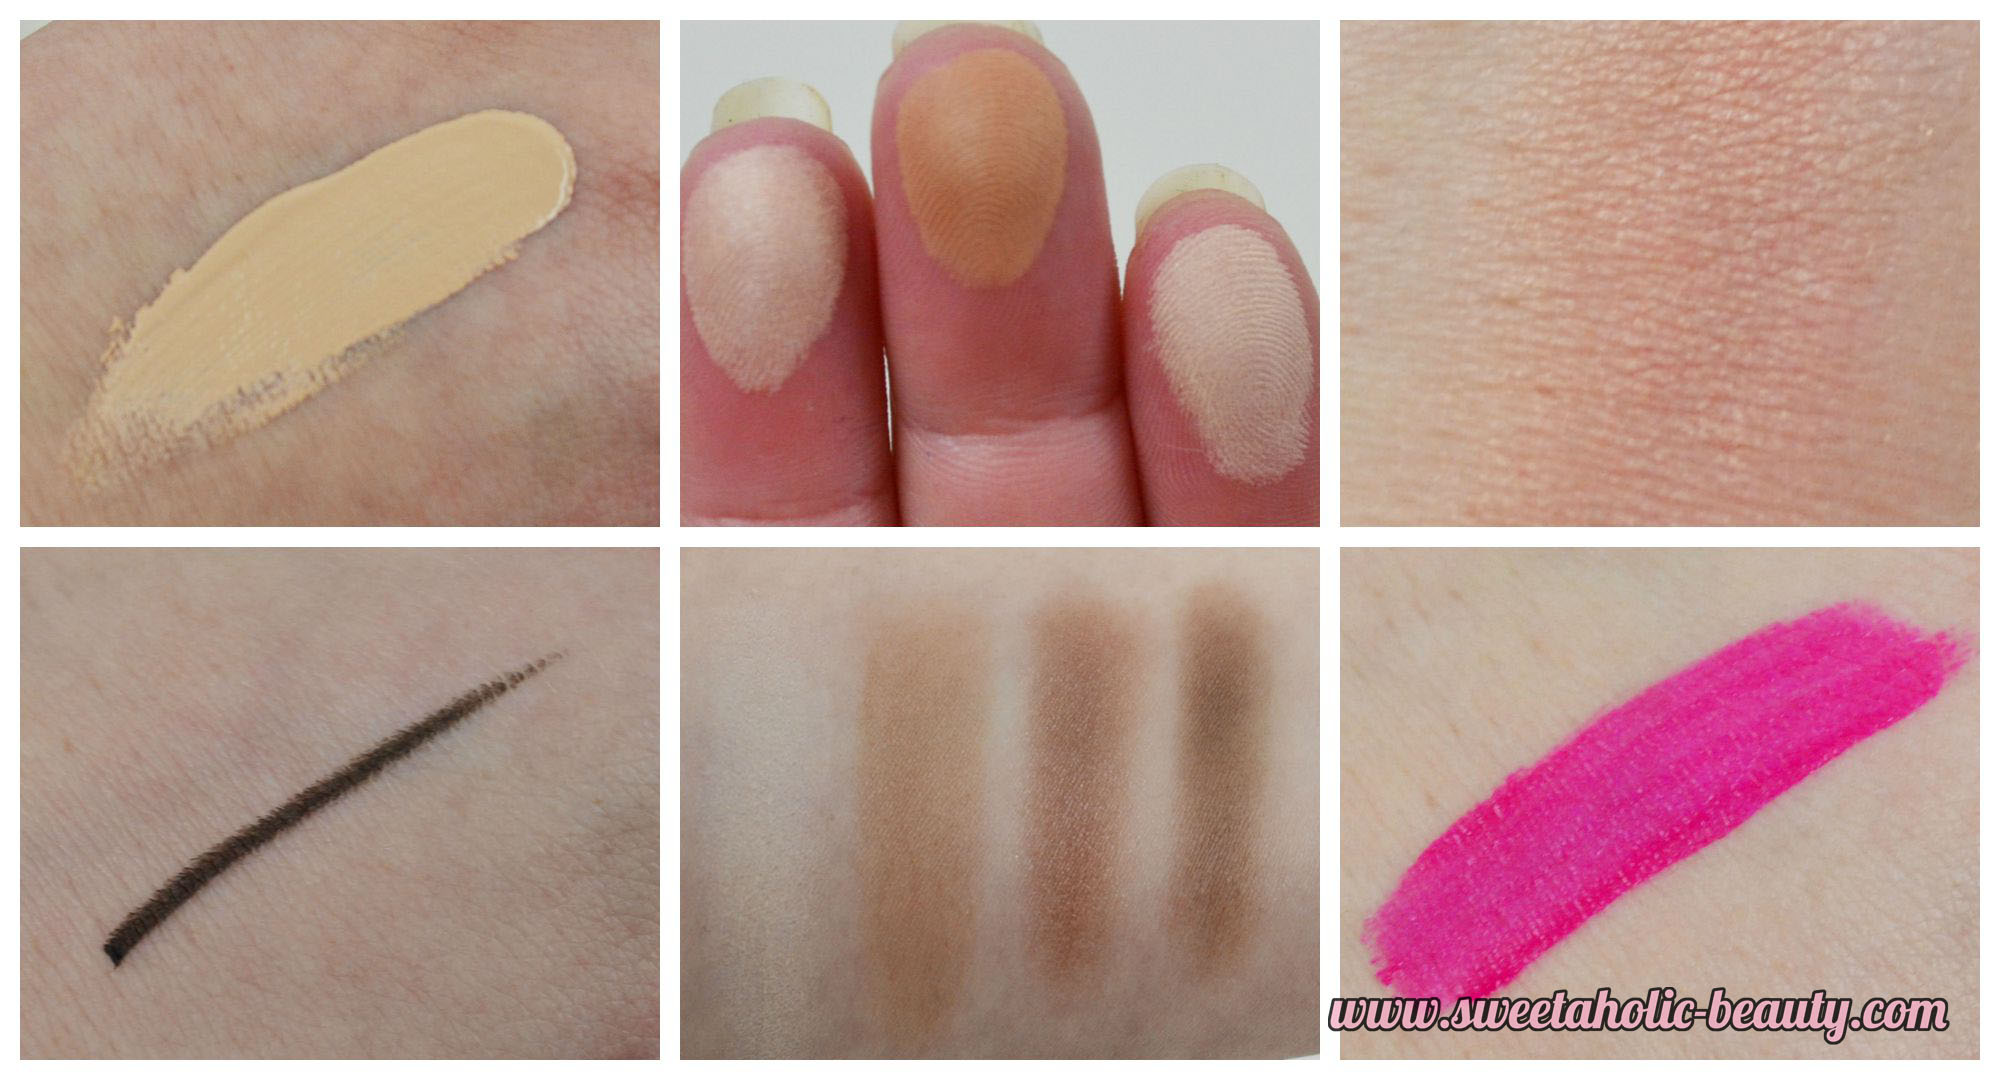 DB Cosmetics Brand Focus Review & Swatches - Sweetaholic Beauty